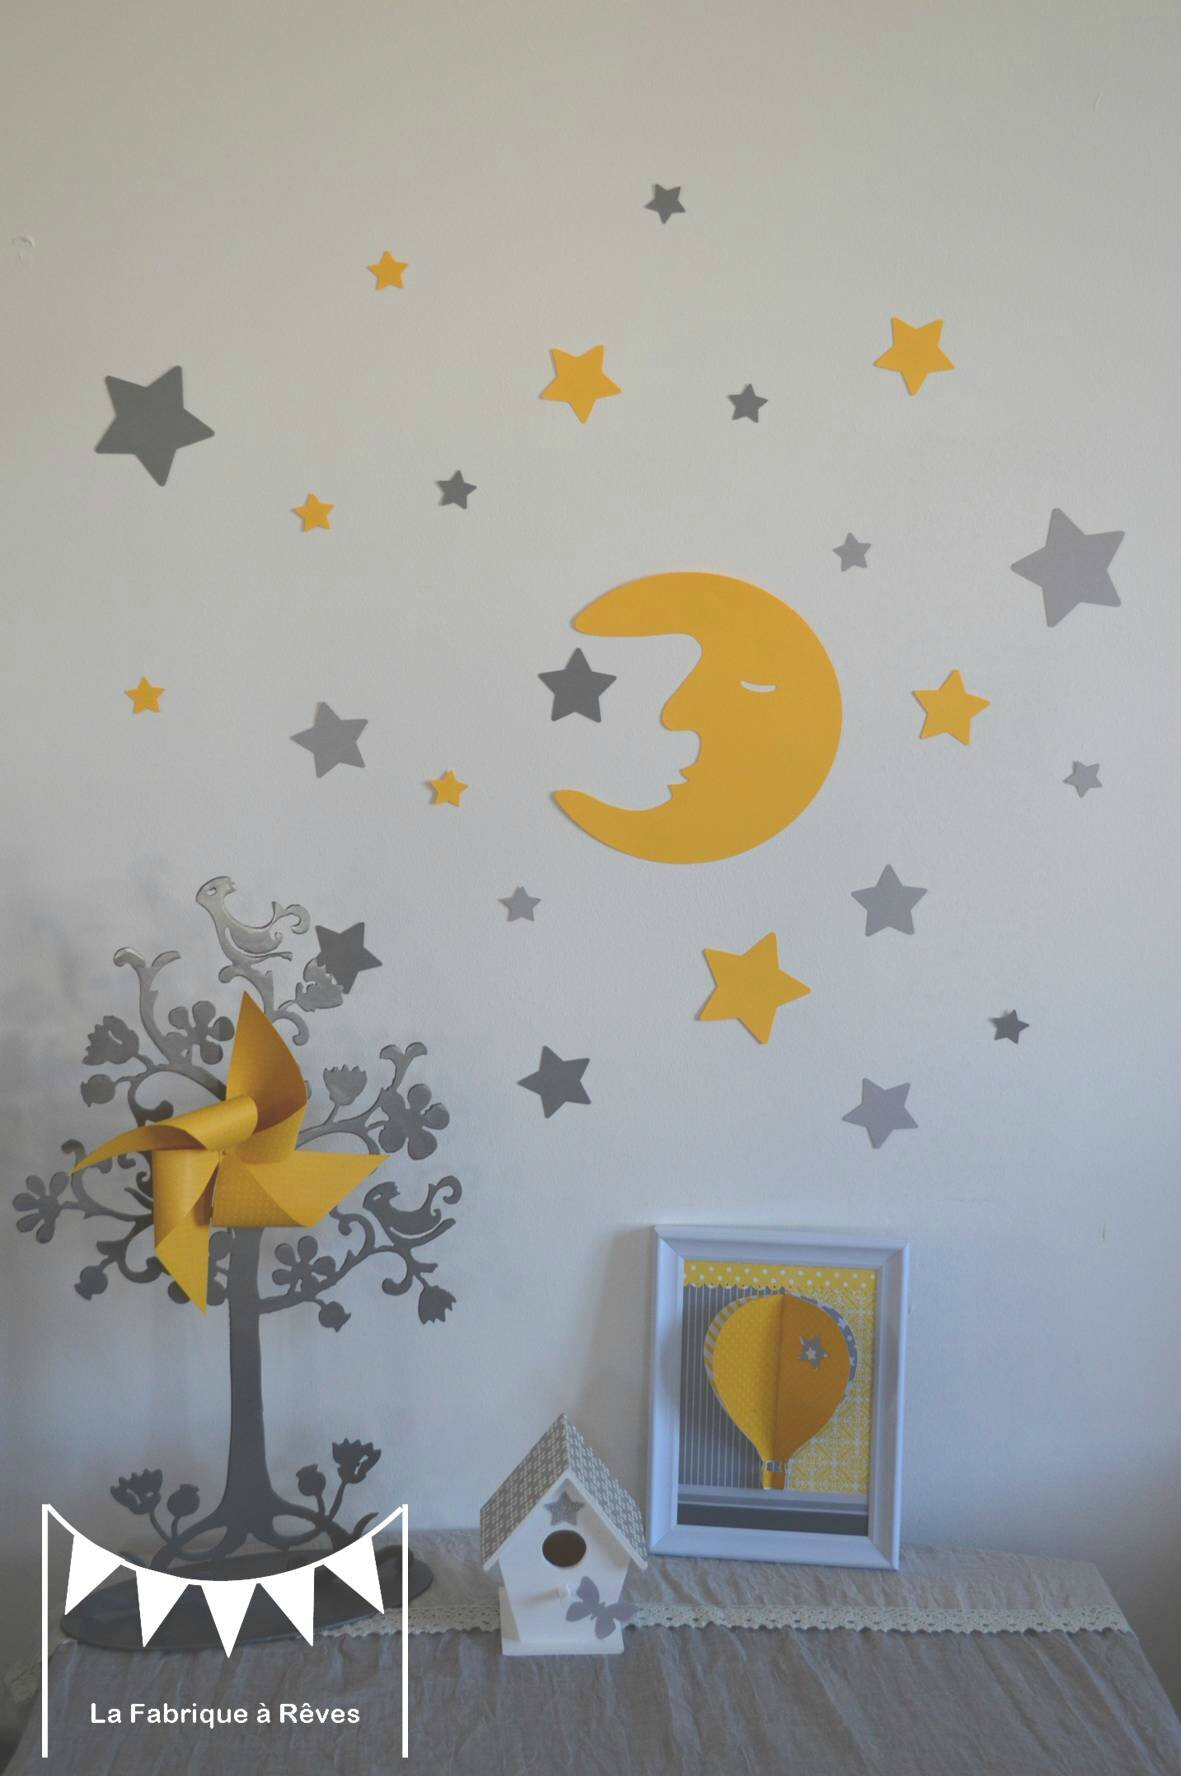 Stickers d coration chambre enfant fille b b gar on lune et toiles jaune gris photo de th me - Stickers pour chambre bebe garcon ...